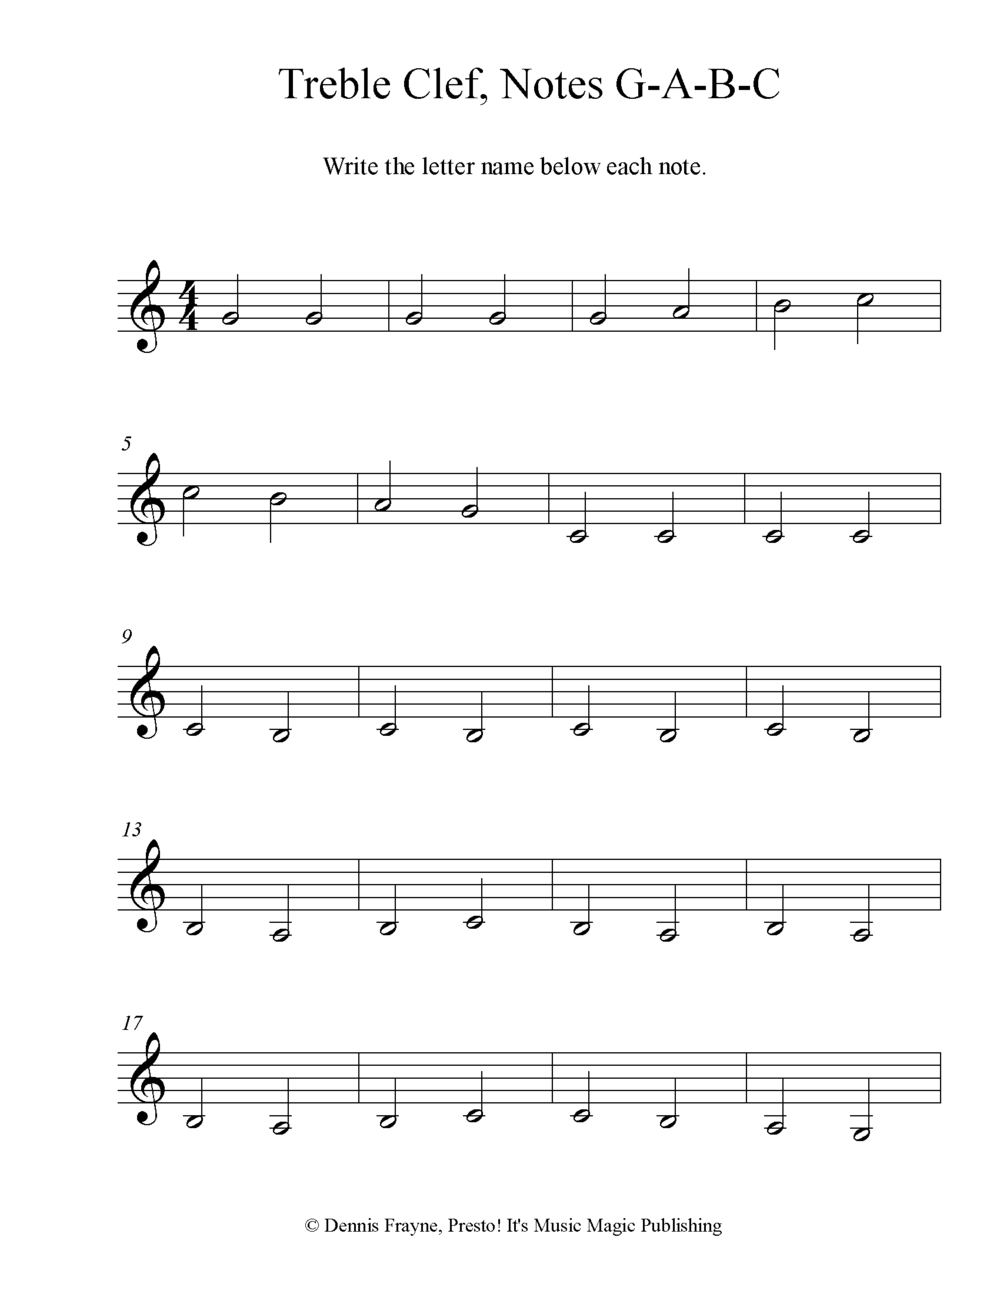 Free! Printable Music Note Naming Worksheets — Presto! It's intended for Letter B Worksheets Pdf